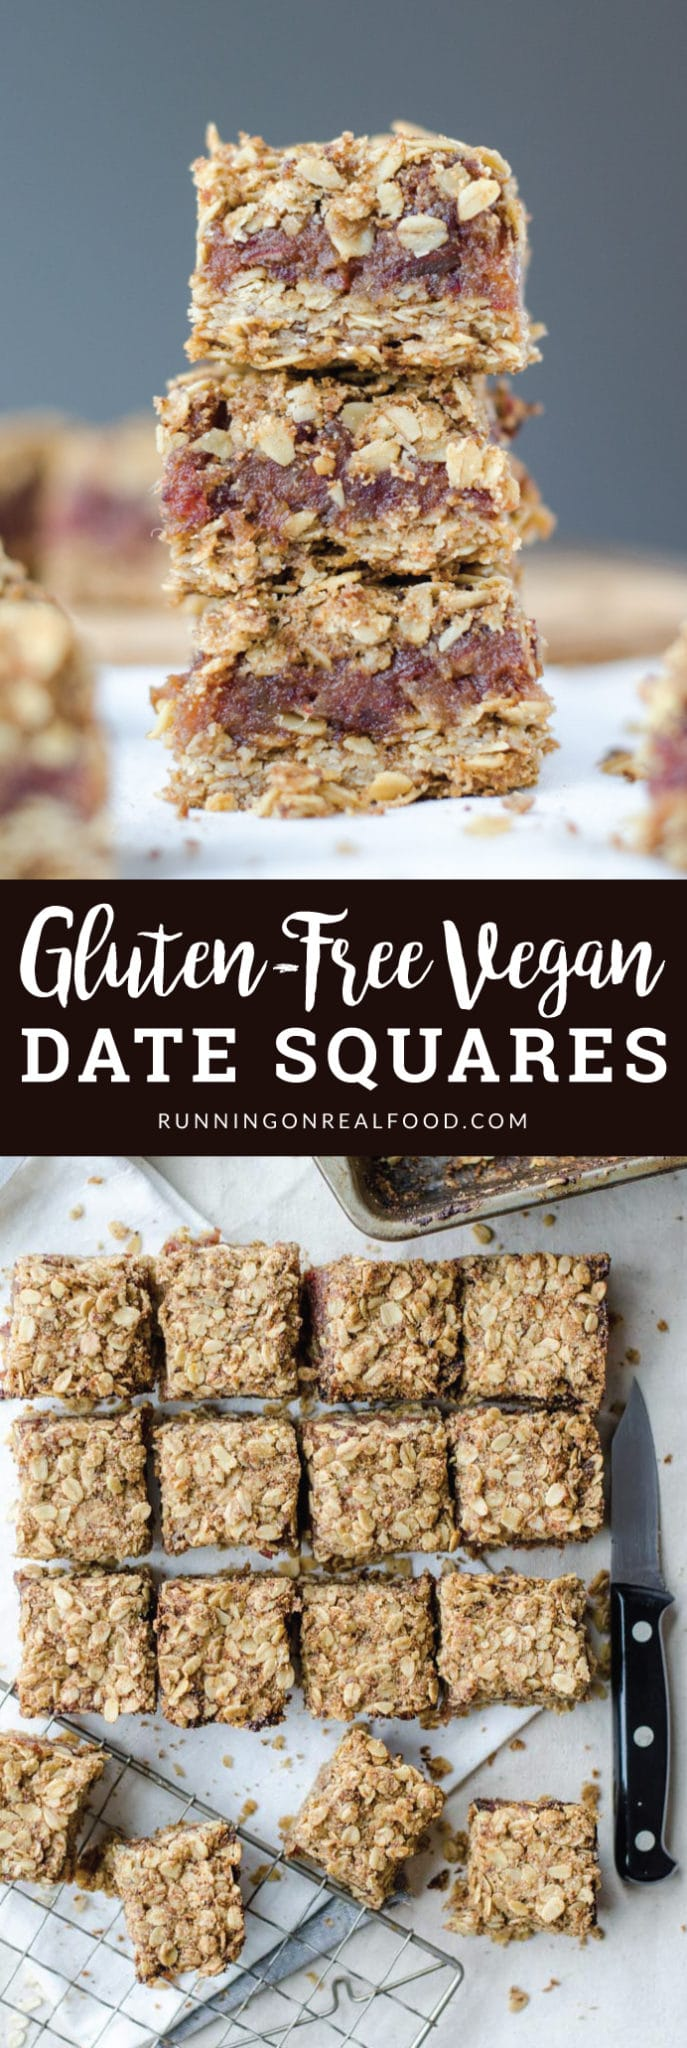 These easy, gluten-free vegan date squares will be a holiday favourite and only require 4 ingredients to make: oats, dates, coconut oil and coconut sugar.